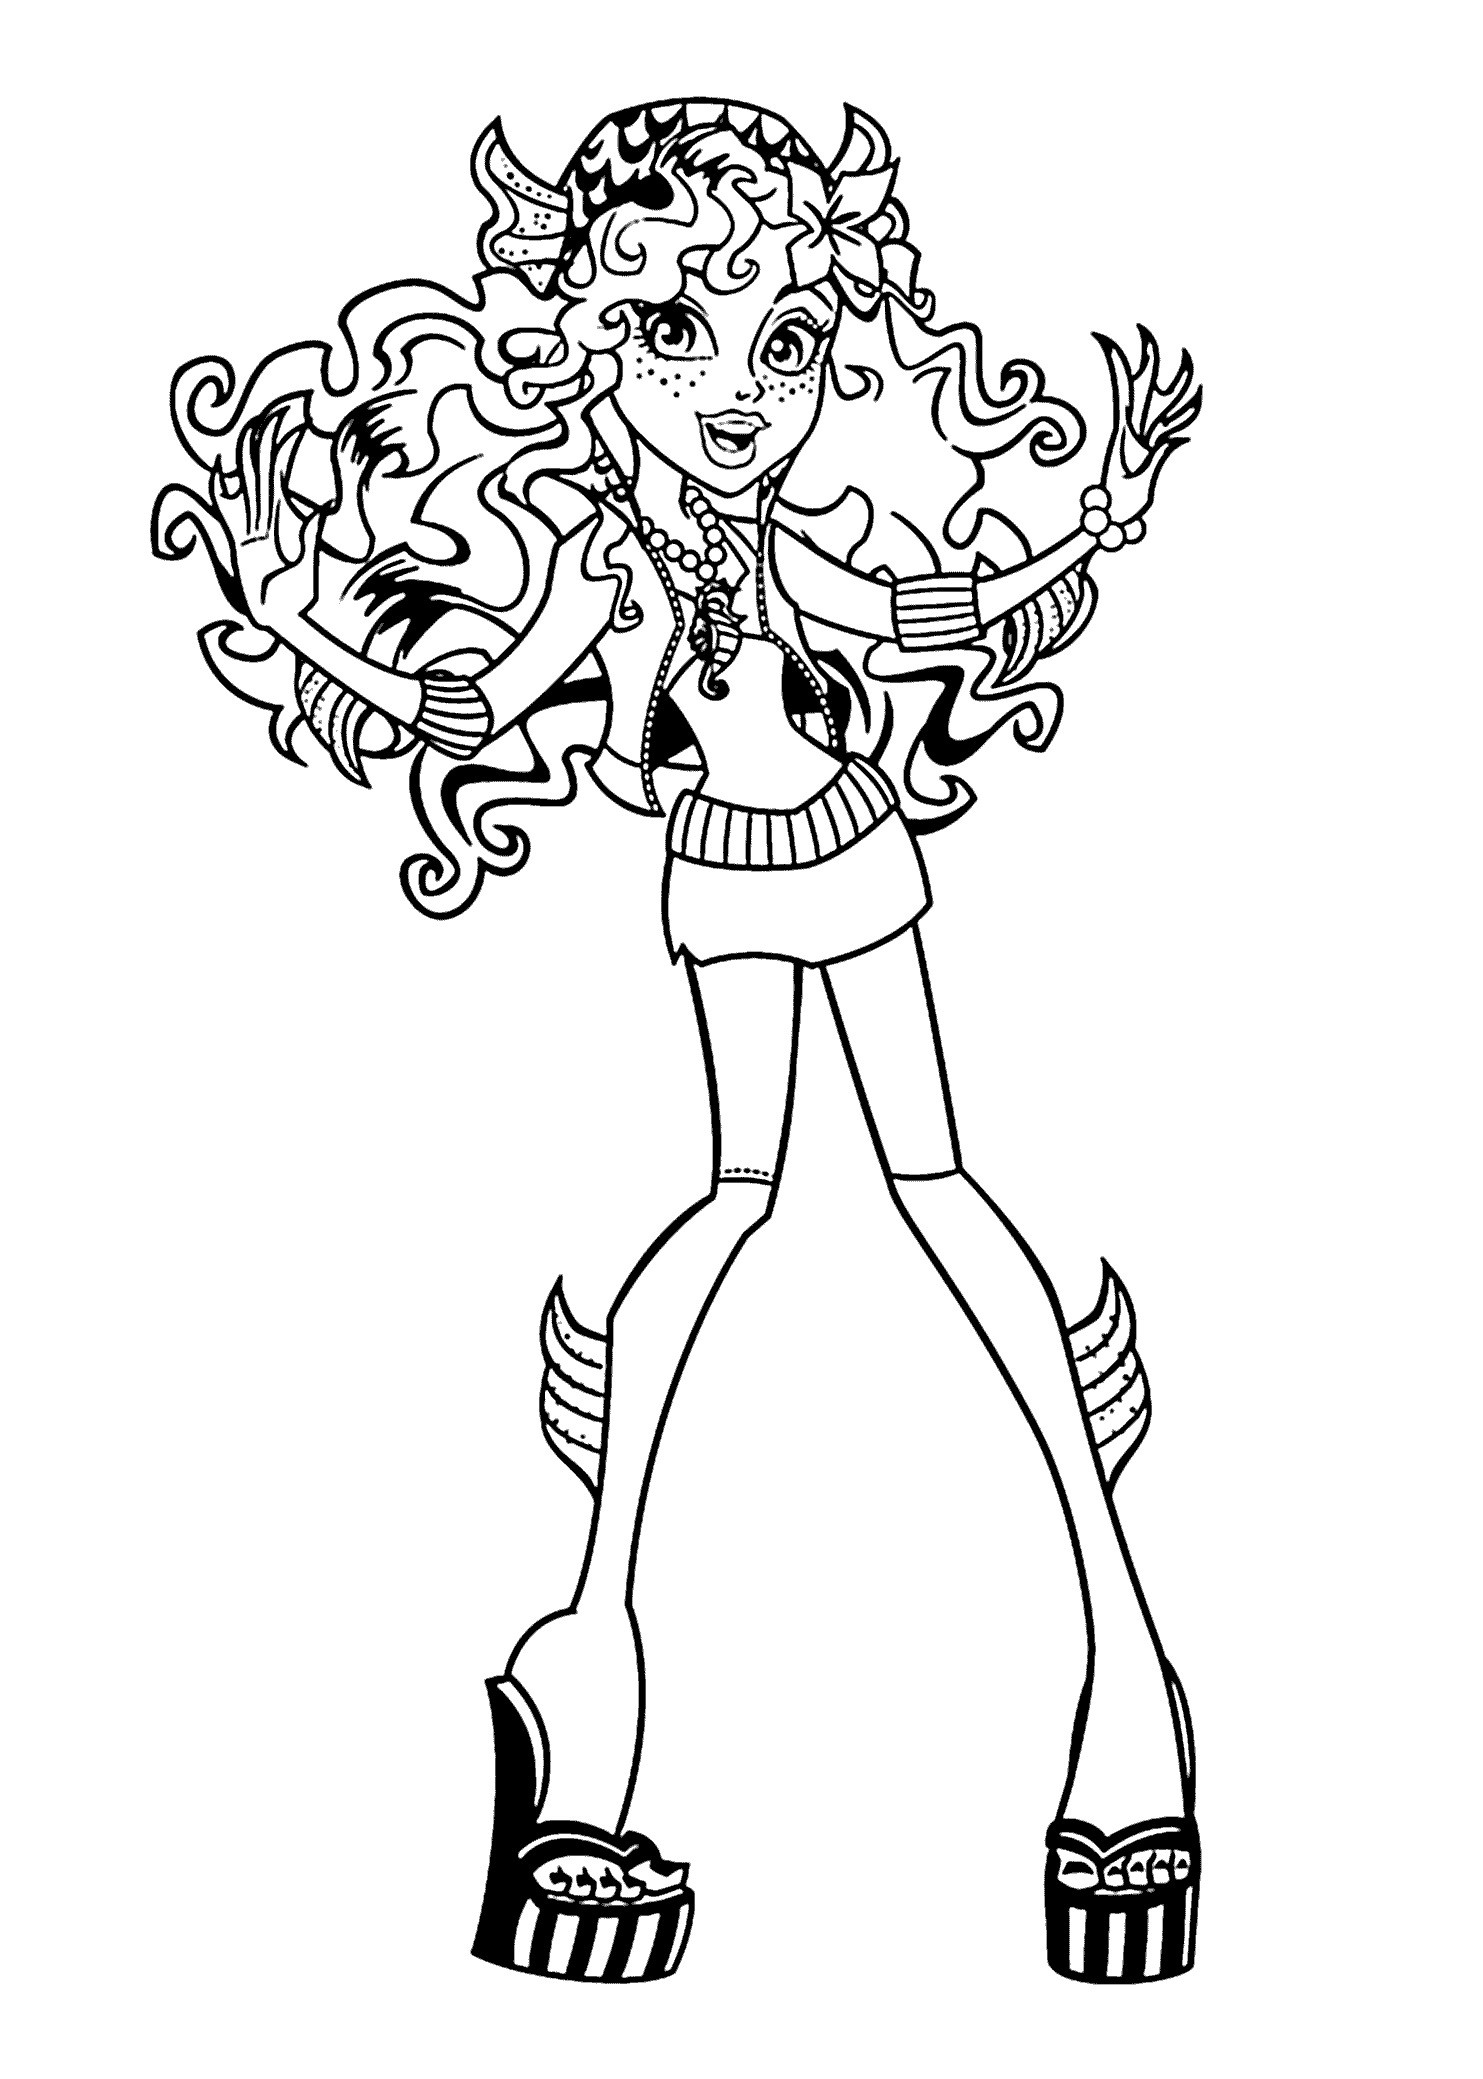 Monster High Ausmalbilder Frisch Monster High Ausmalbilder Lagoona Blue Frisch Coloring Pages Monster Stock